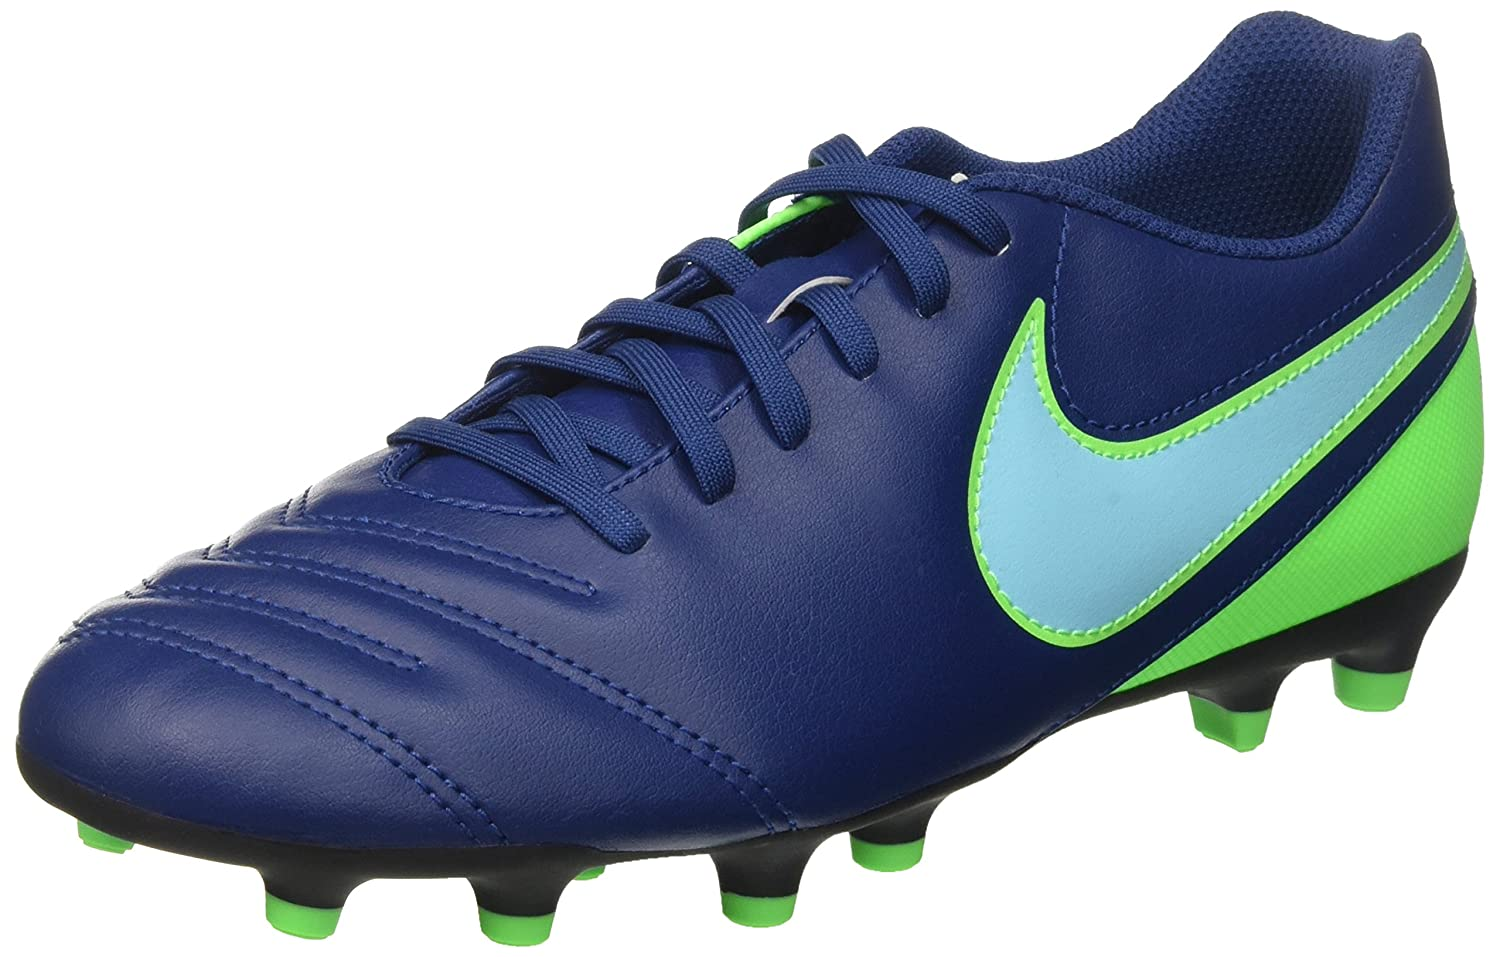 ciclo Romper proteger  Buy NIKE TIEMPO RIO III FG MENS SIZE 7 UK/IND (EUR 41) (US 8) at Amazon.in